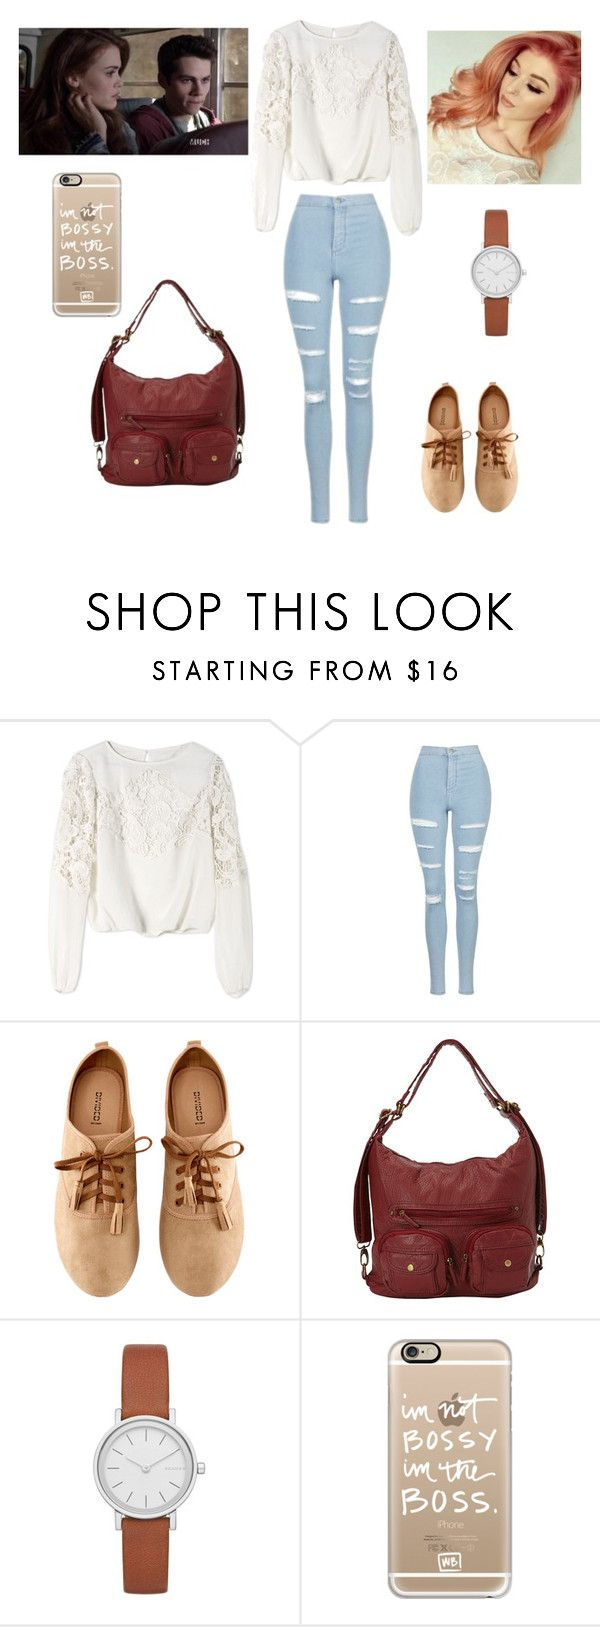 """""""Lydia's lil sister"""" by martinez-shell ❤ liked on Polyvore featuring beauty, Episode, Alice + Olivia, Topshop, H&M, Skagen and Casetify"""